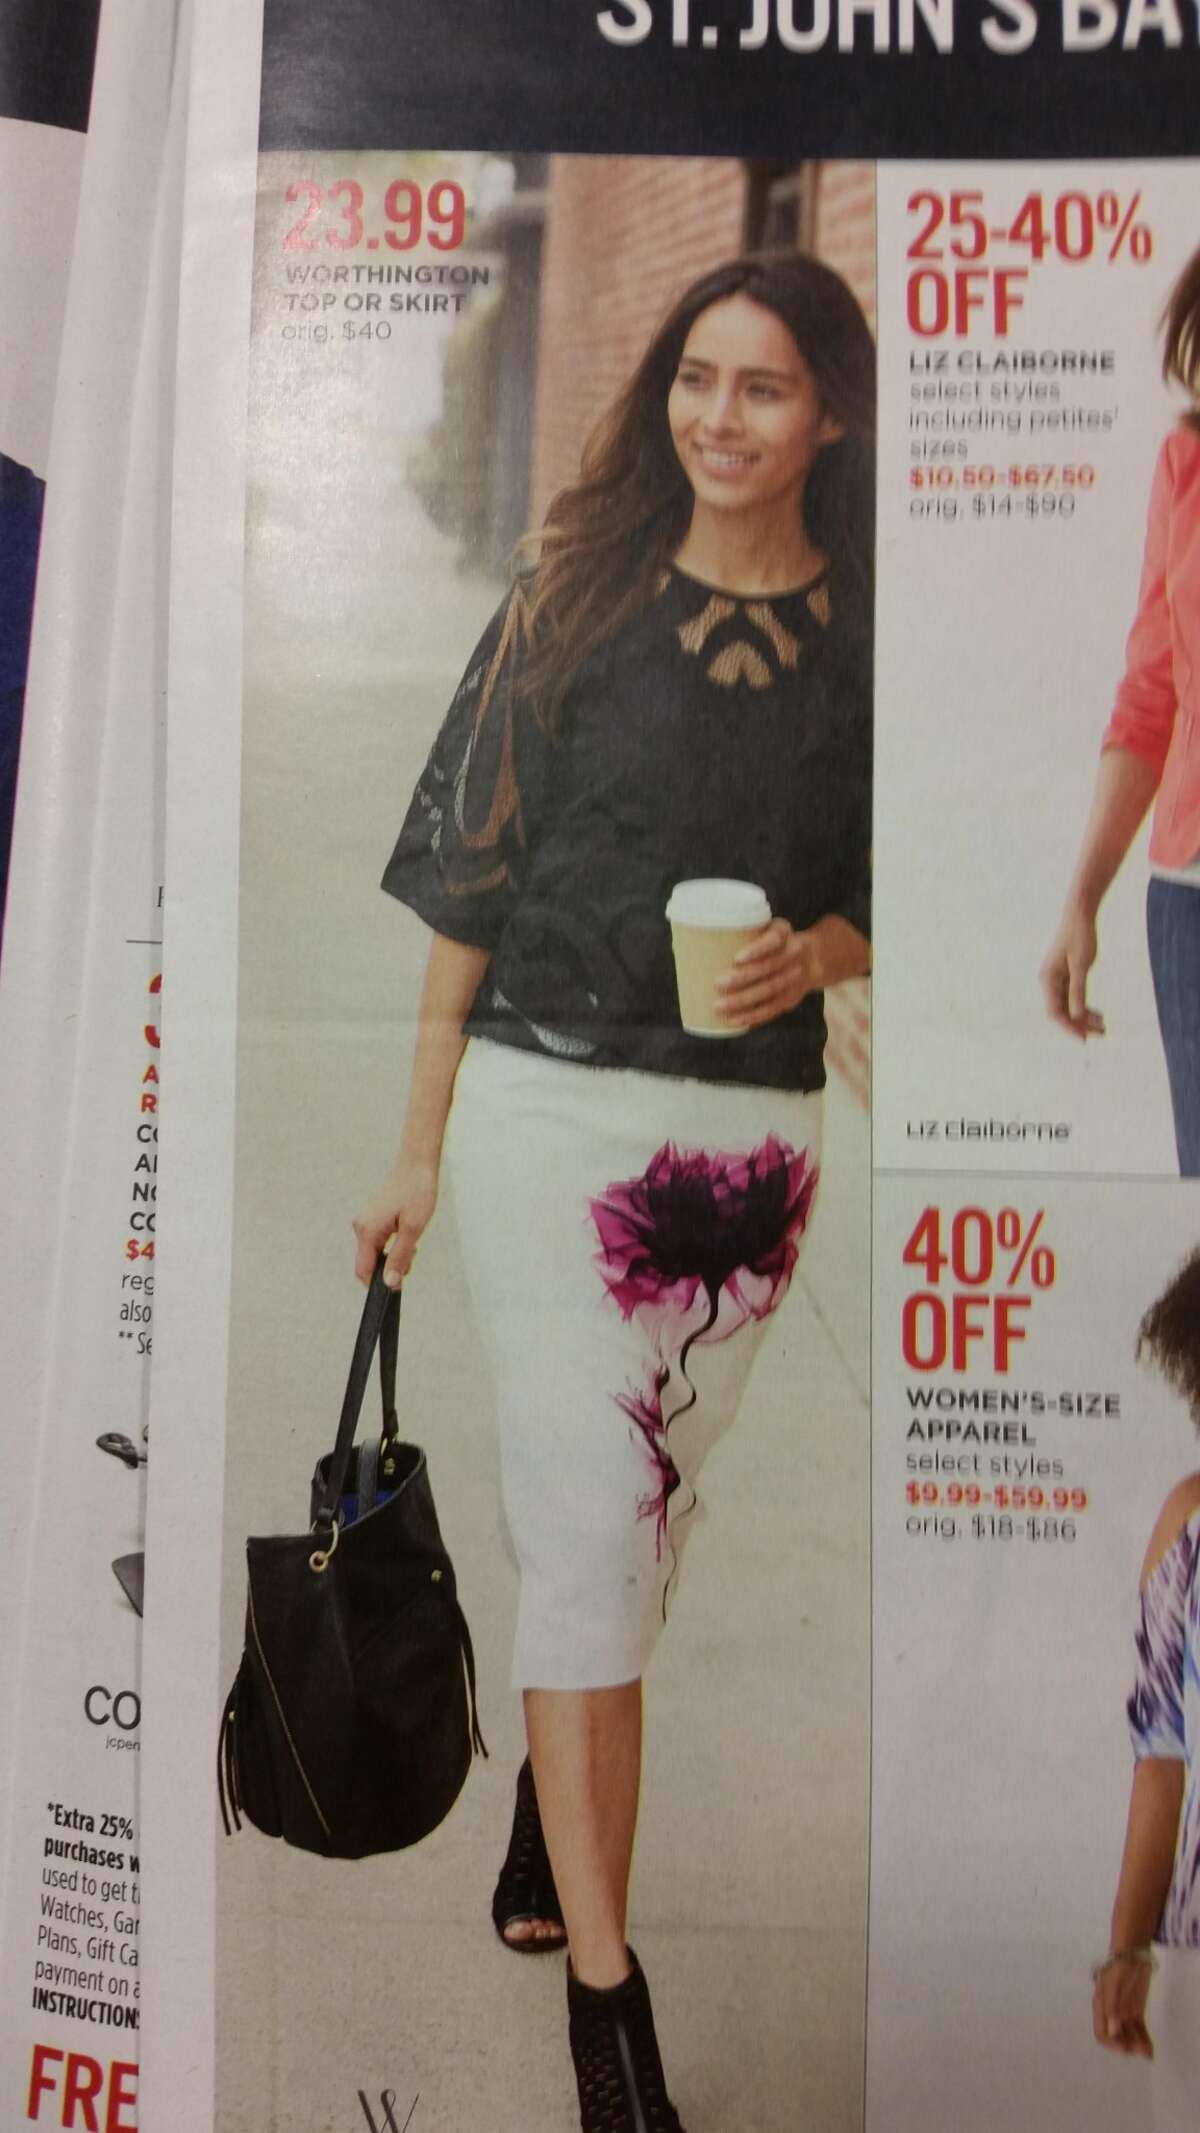 This JCPenney skirt featuring a